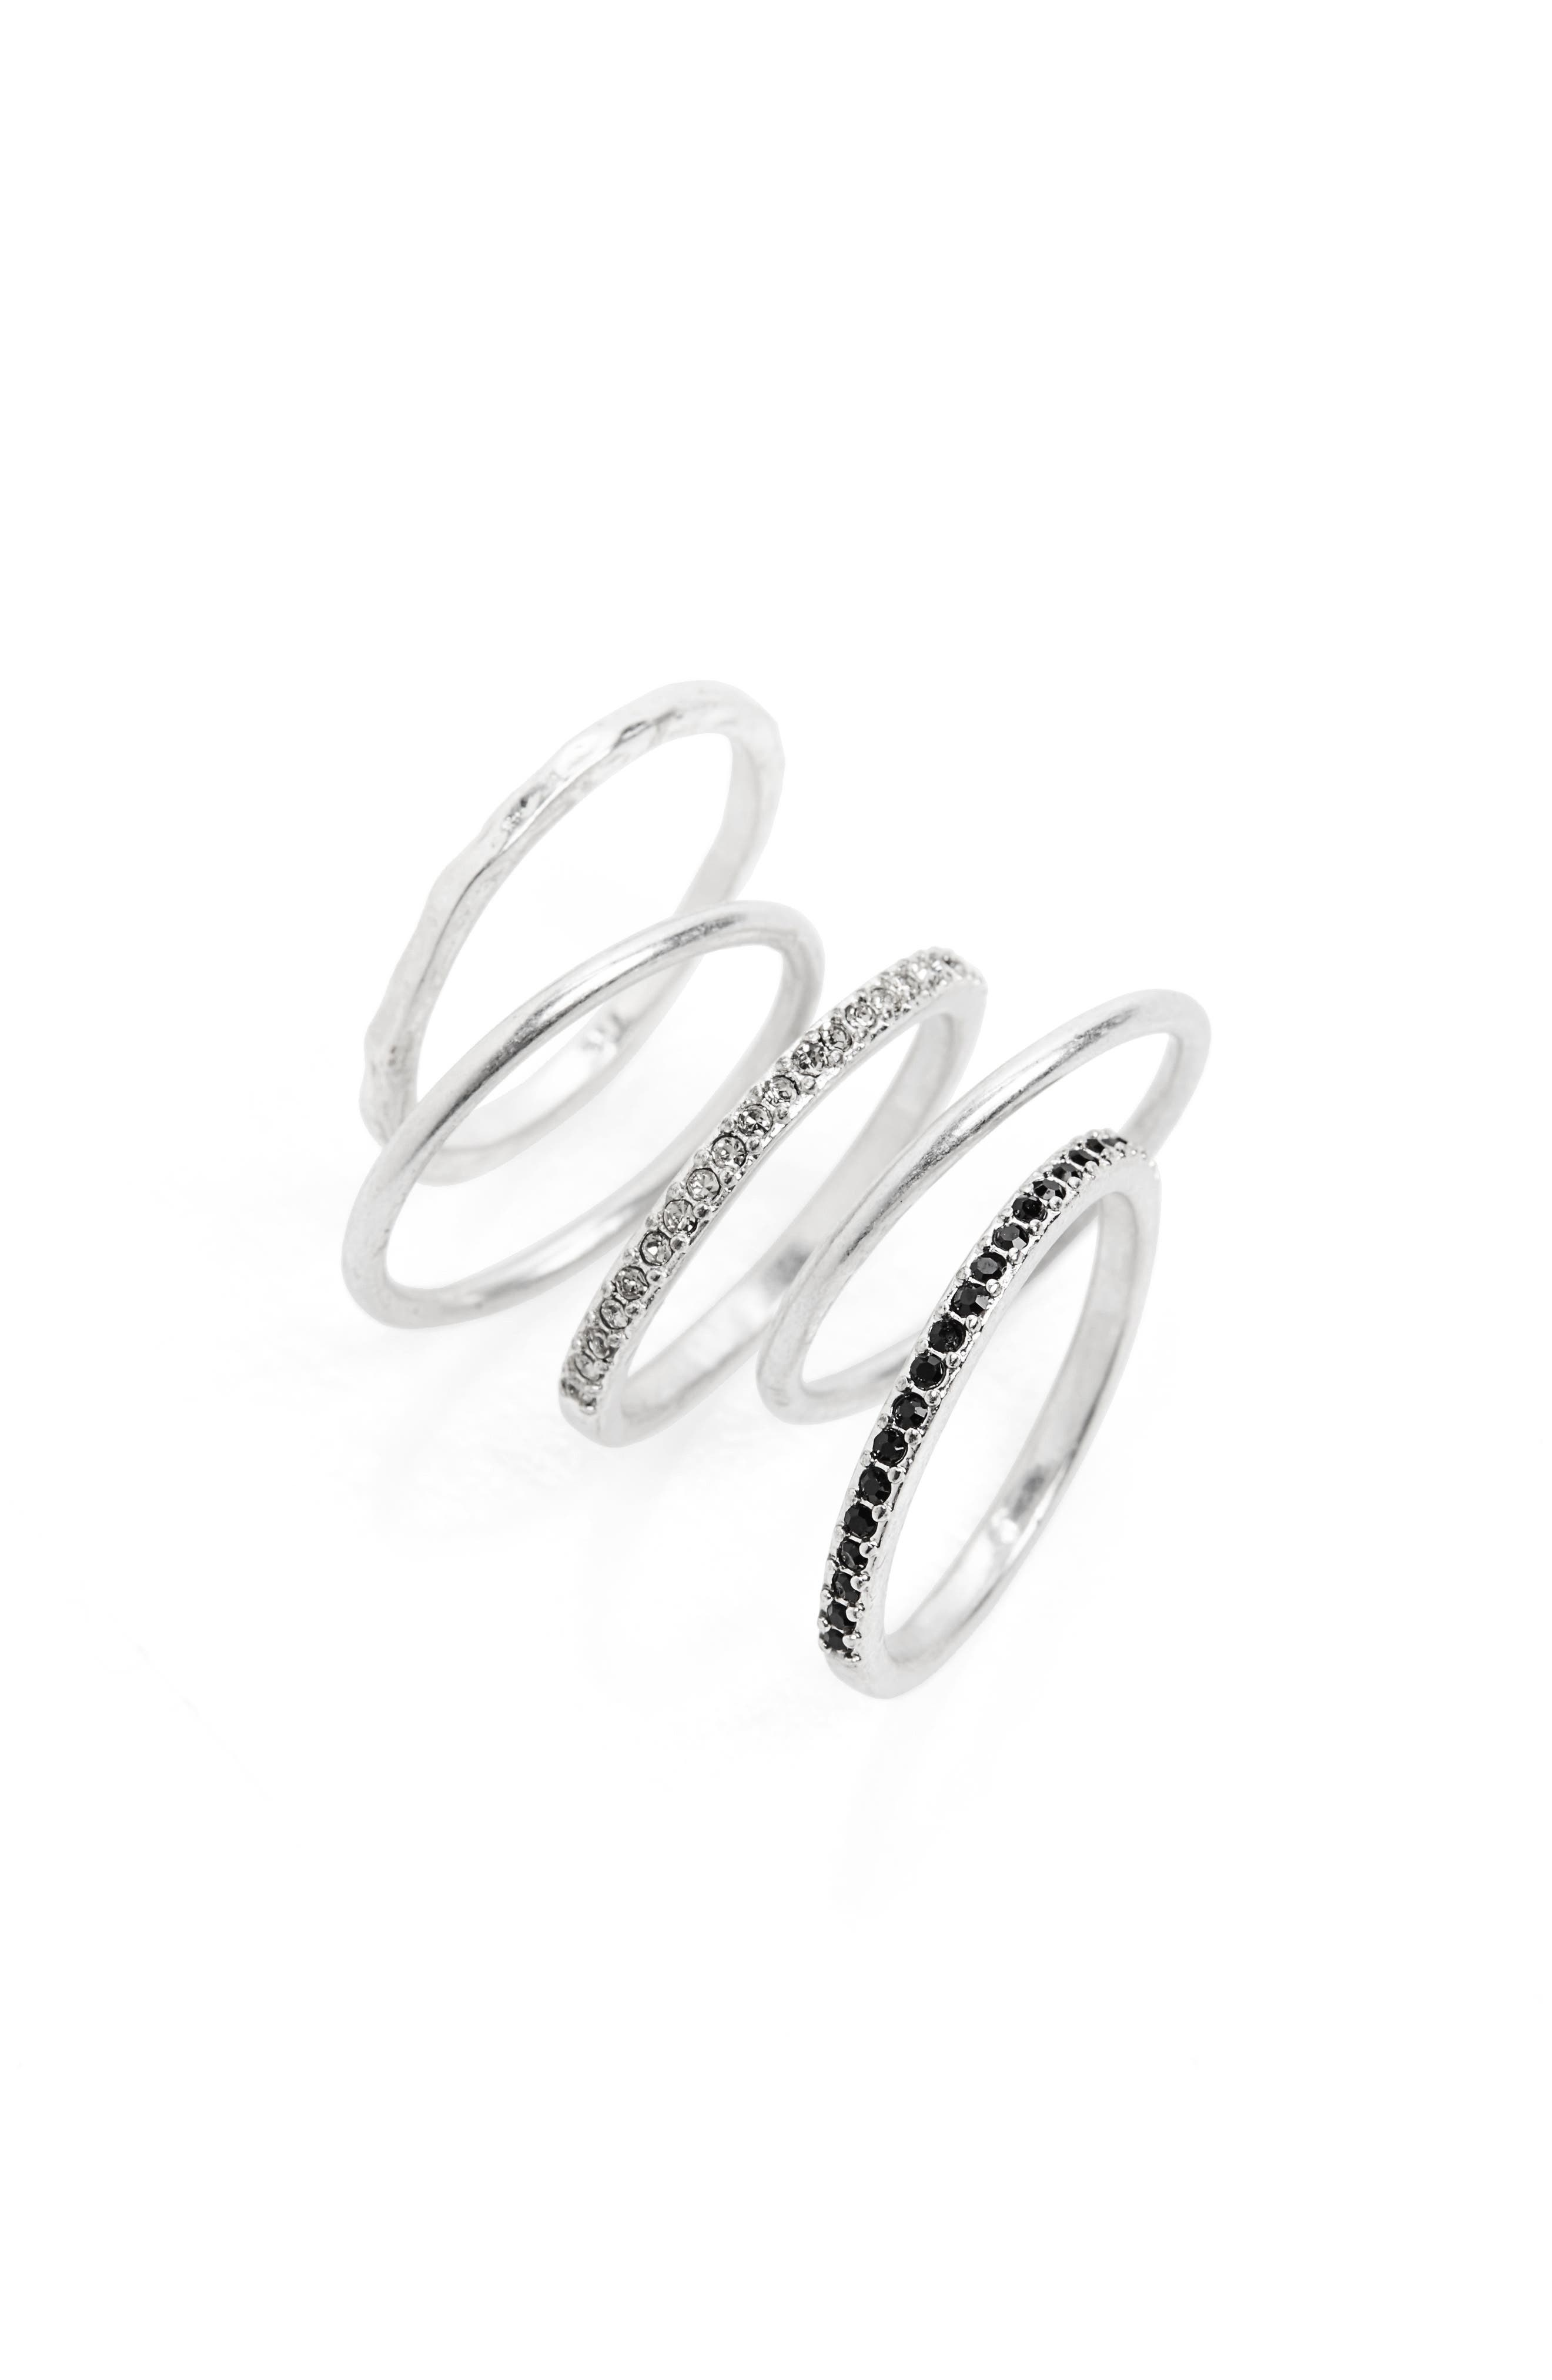 MADEWELL, Filament Set of 5 Stacking Rings, Main thumbnail 1, color, LIGHT SILVER OX